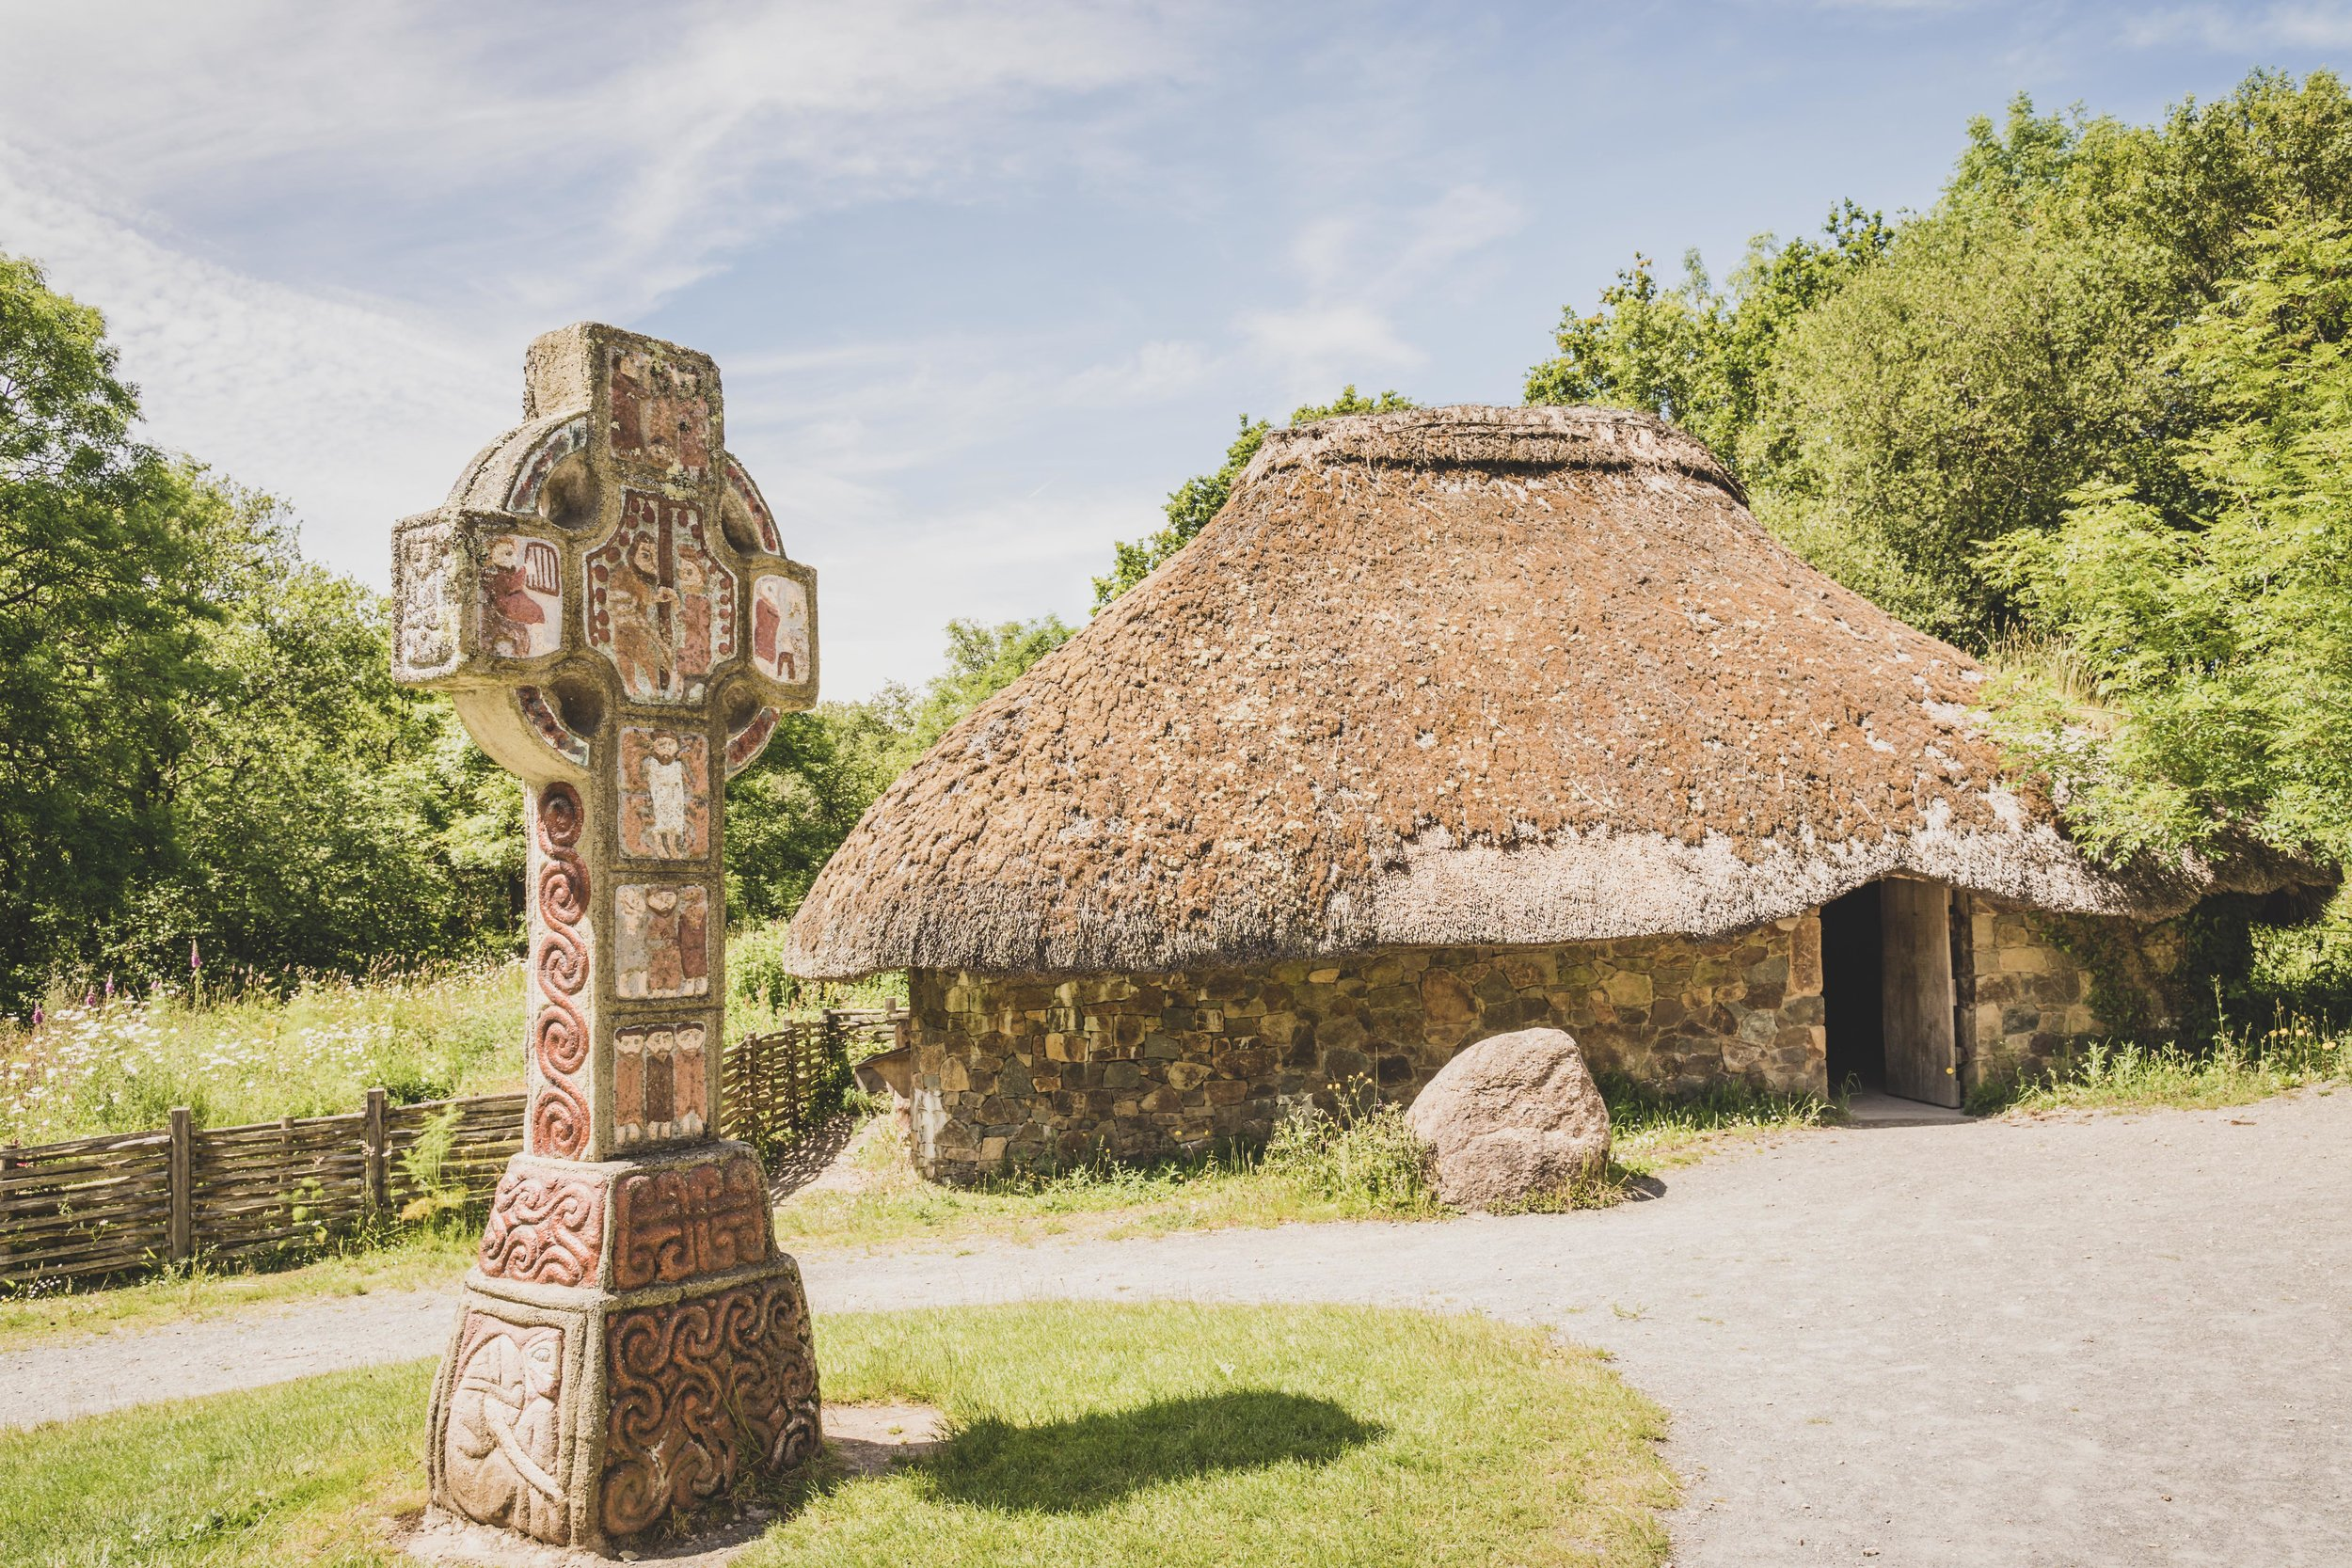 wexford heritage centre ireland town cross and house.jpg